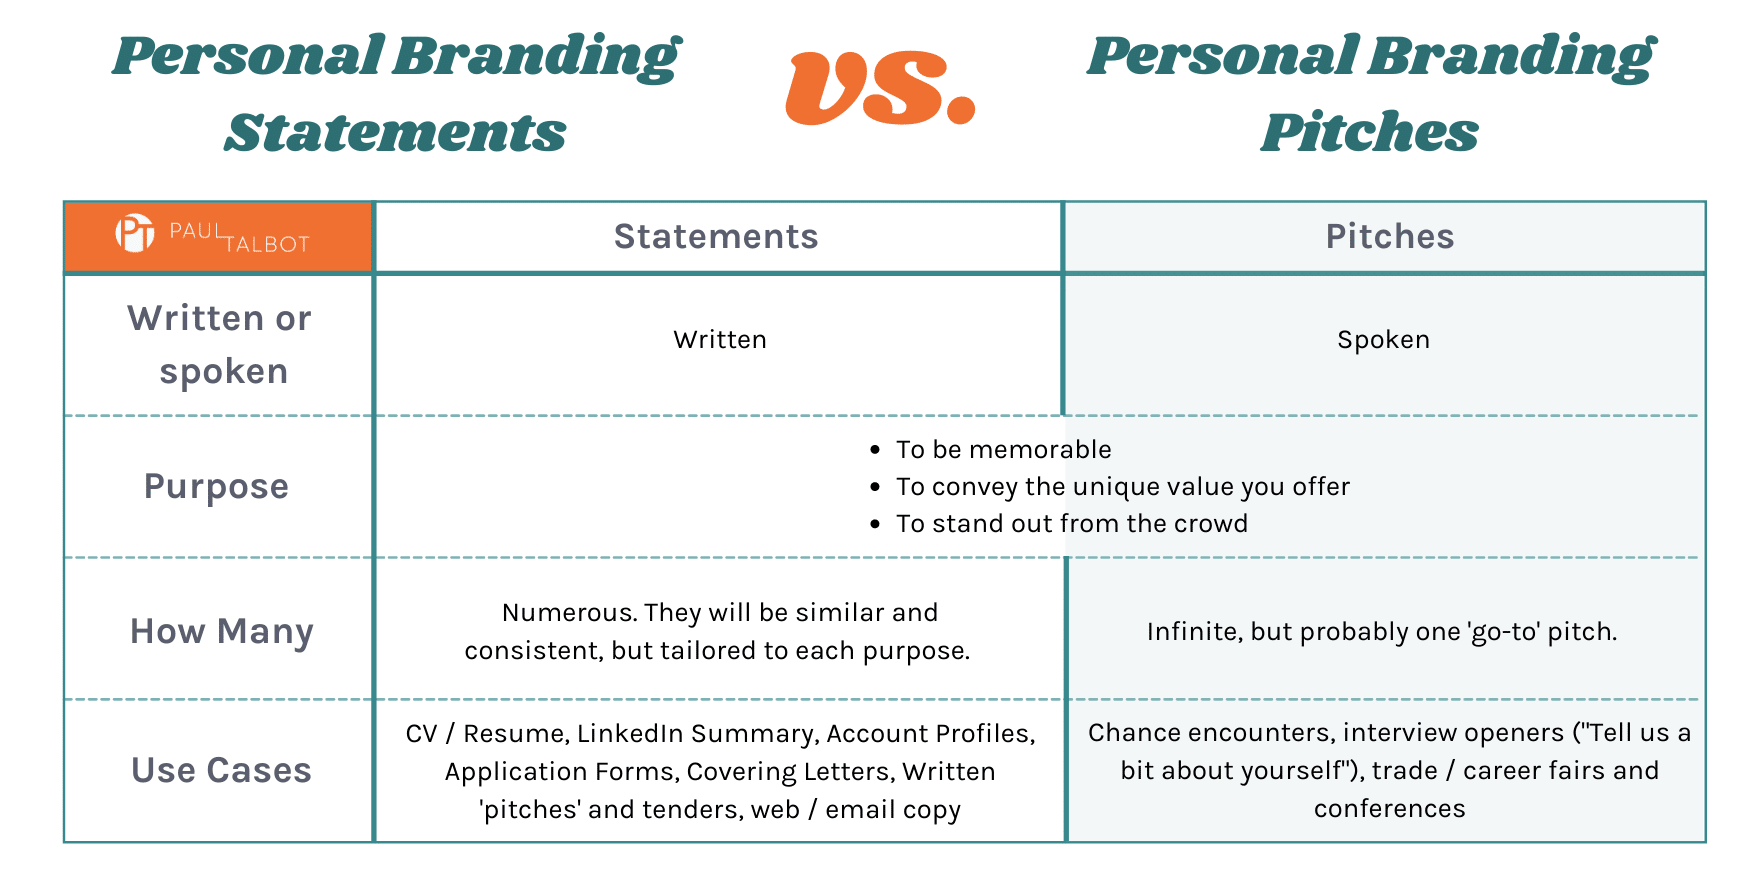 Personal Branding Statements vs. Personal Branding Pitches